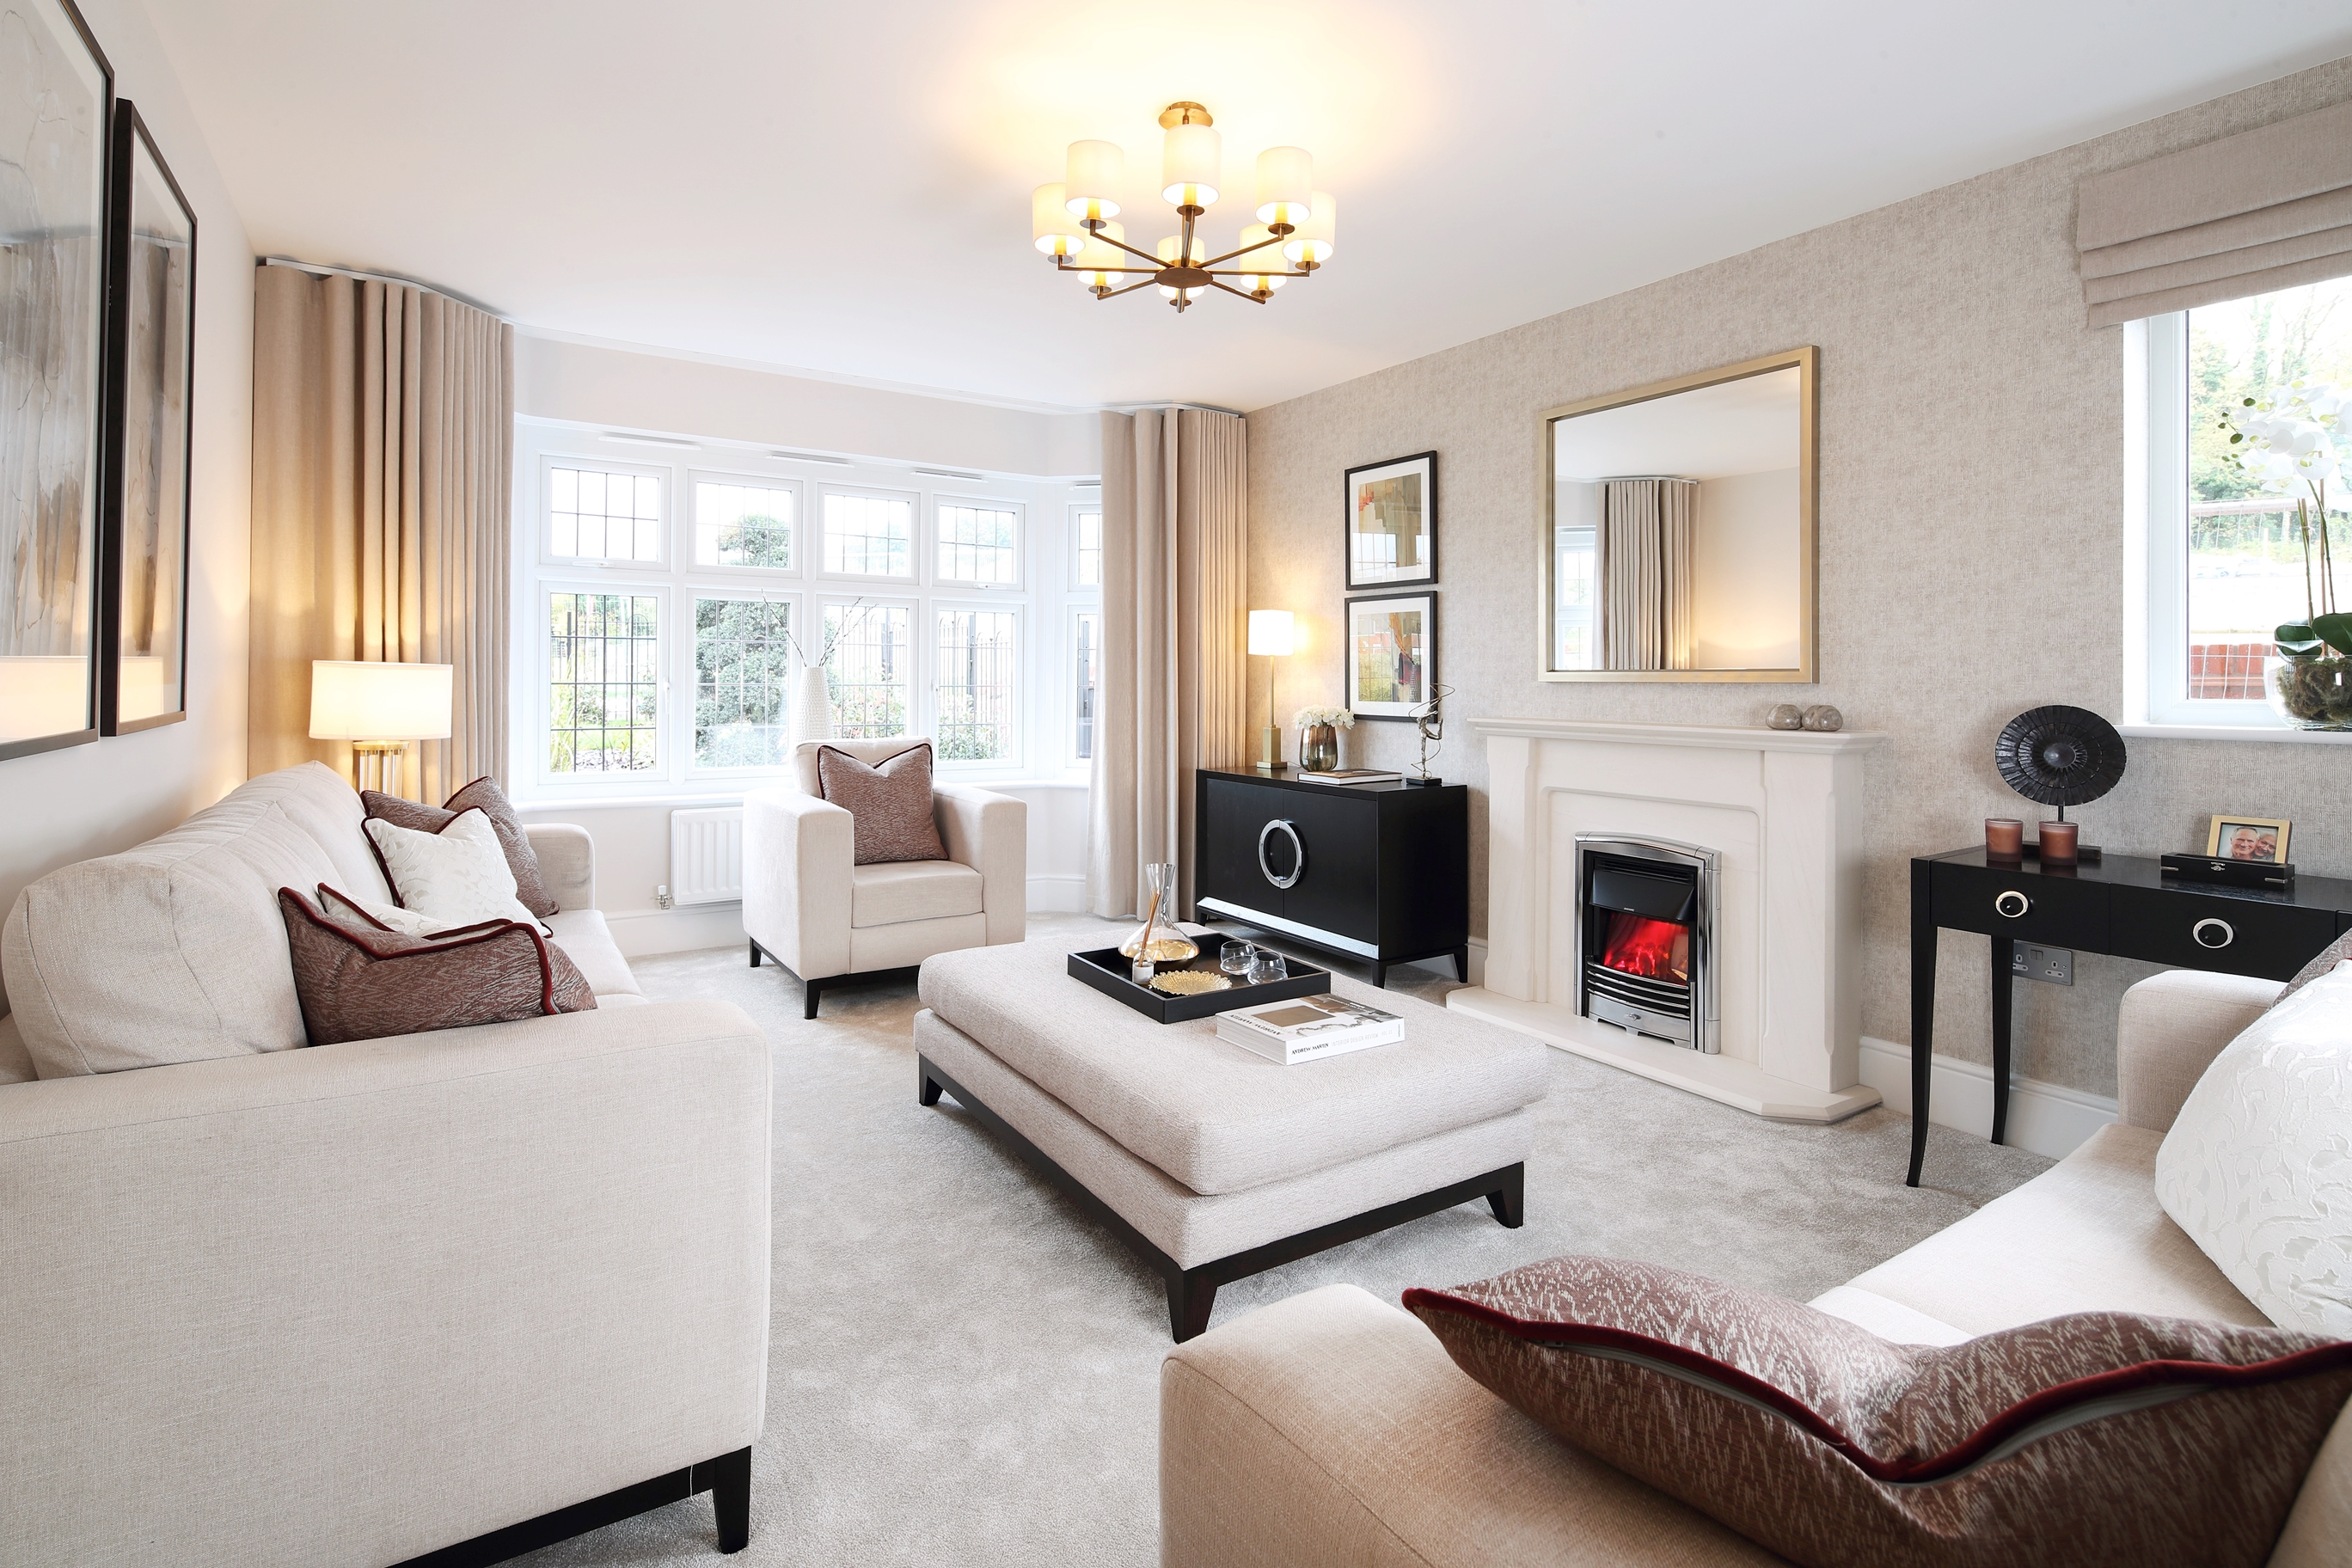 Get The Look How We Styled The Richmond Show Home At Marleberg Grange Redrow